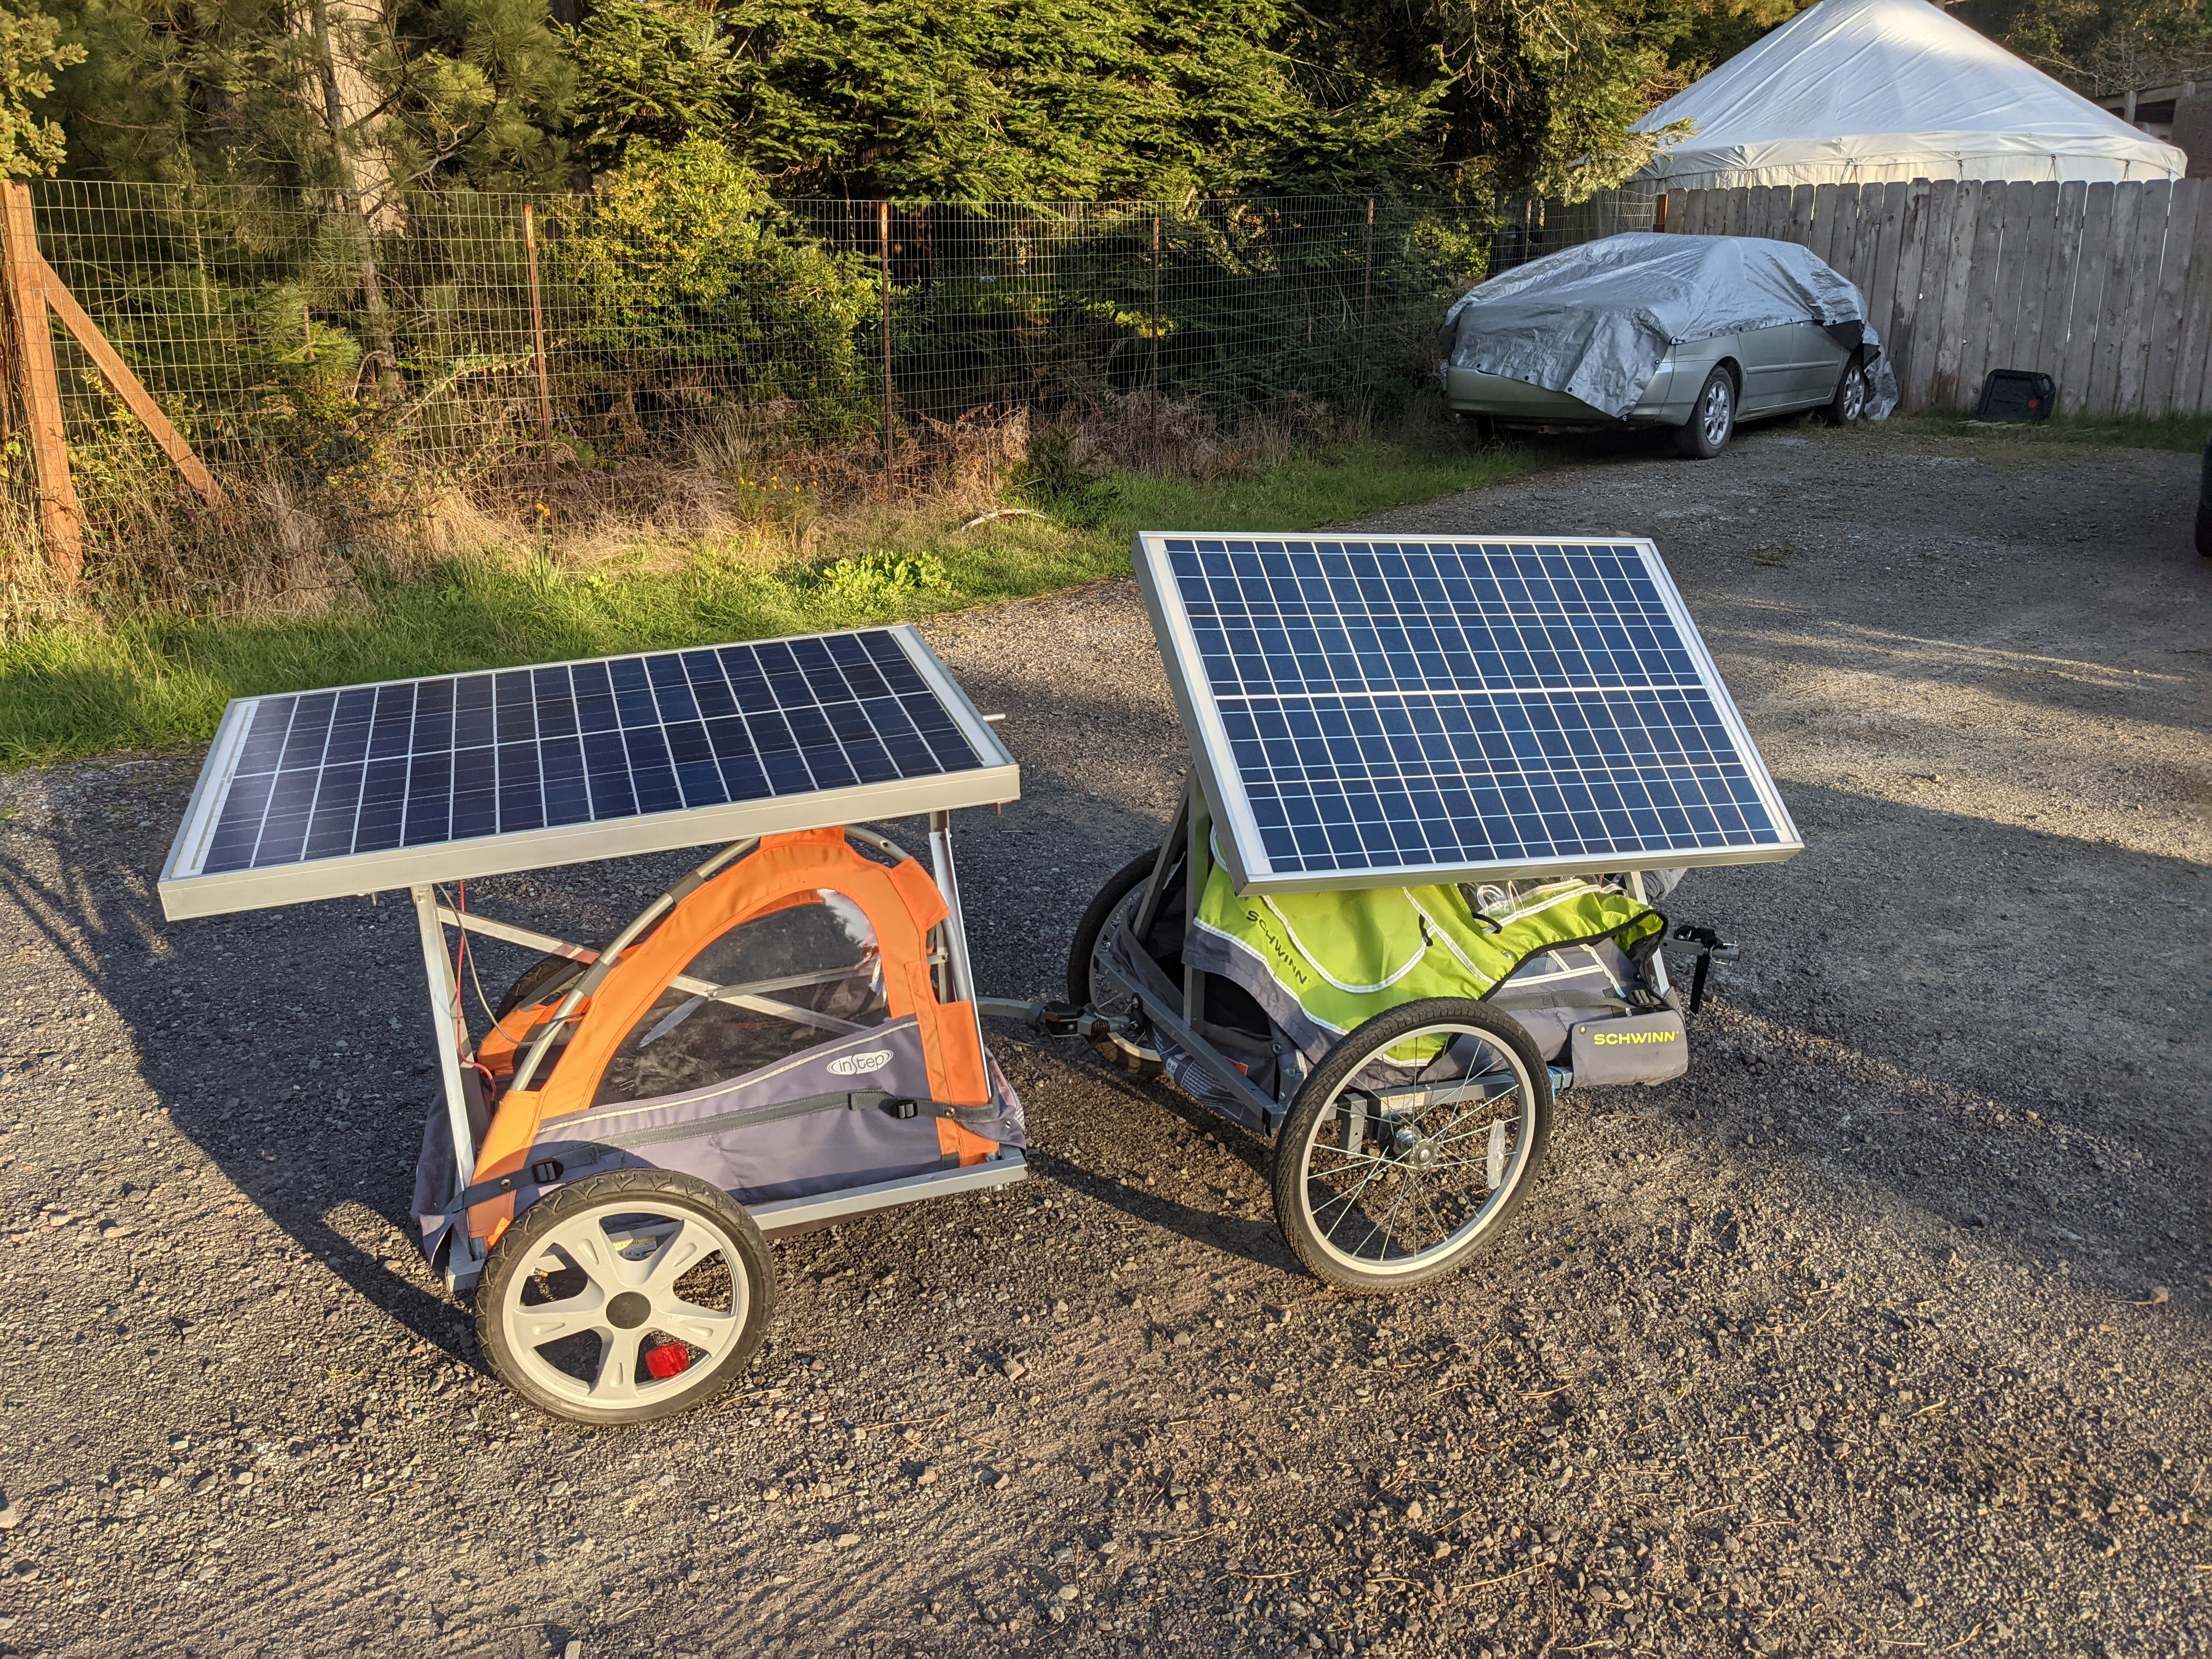 solar panel trailer connected using pivoting attachment arms